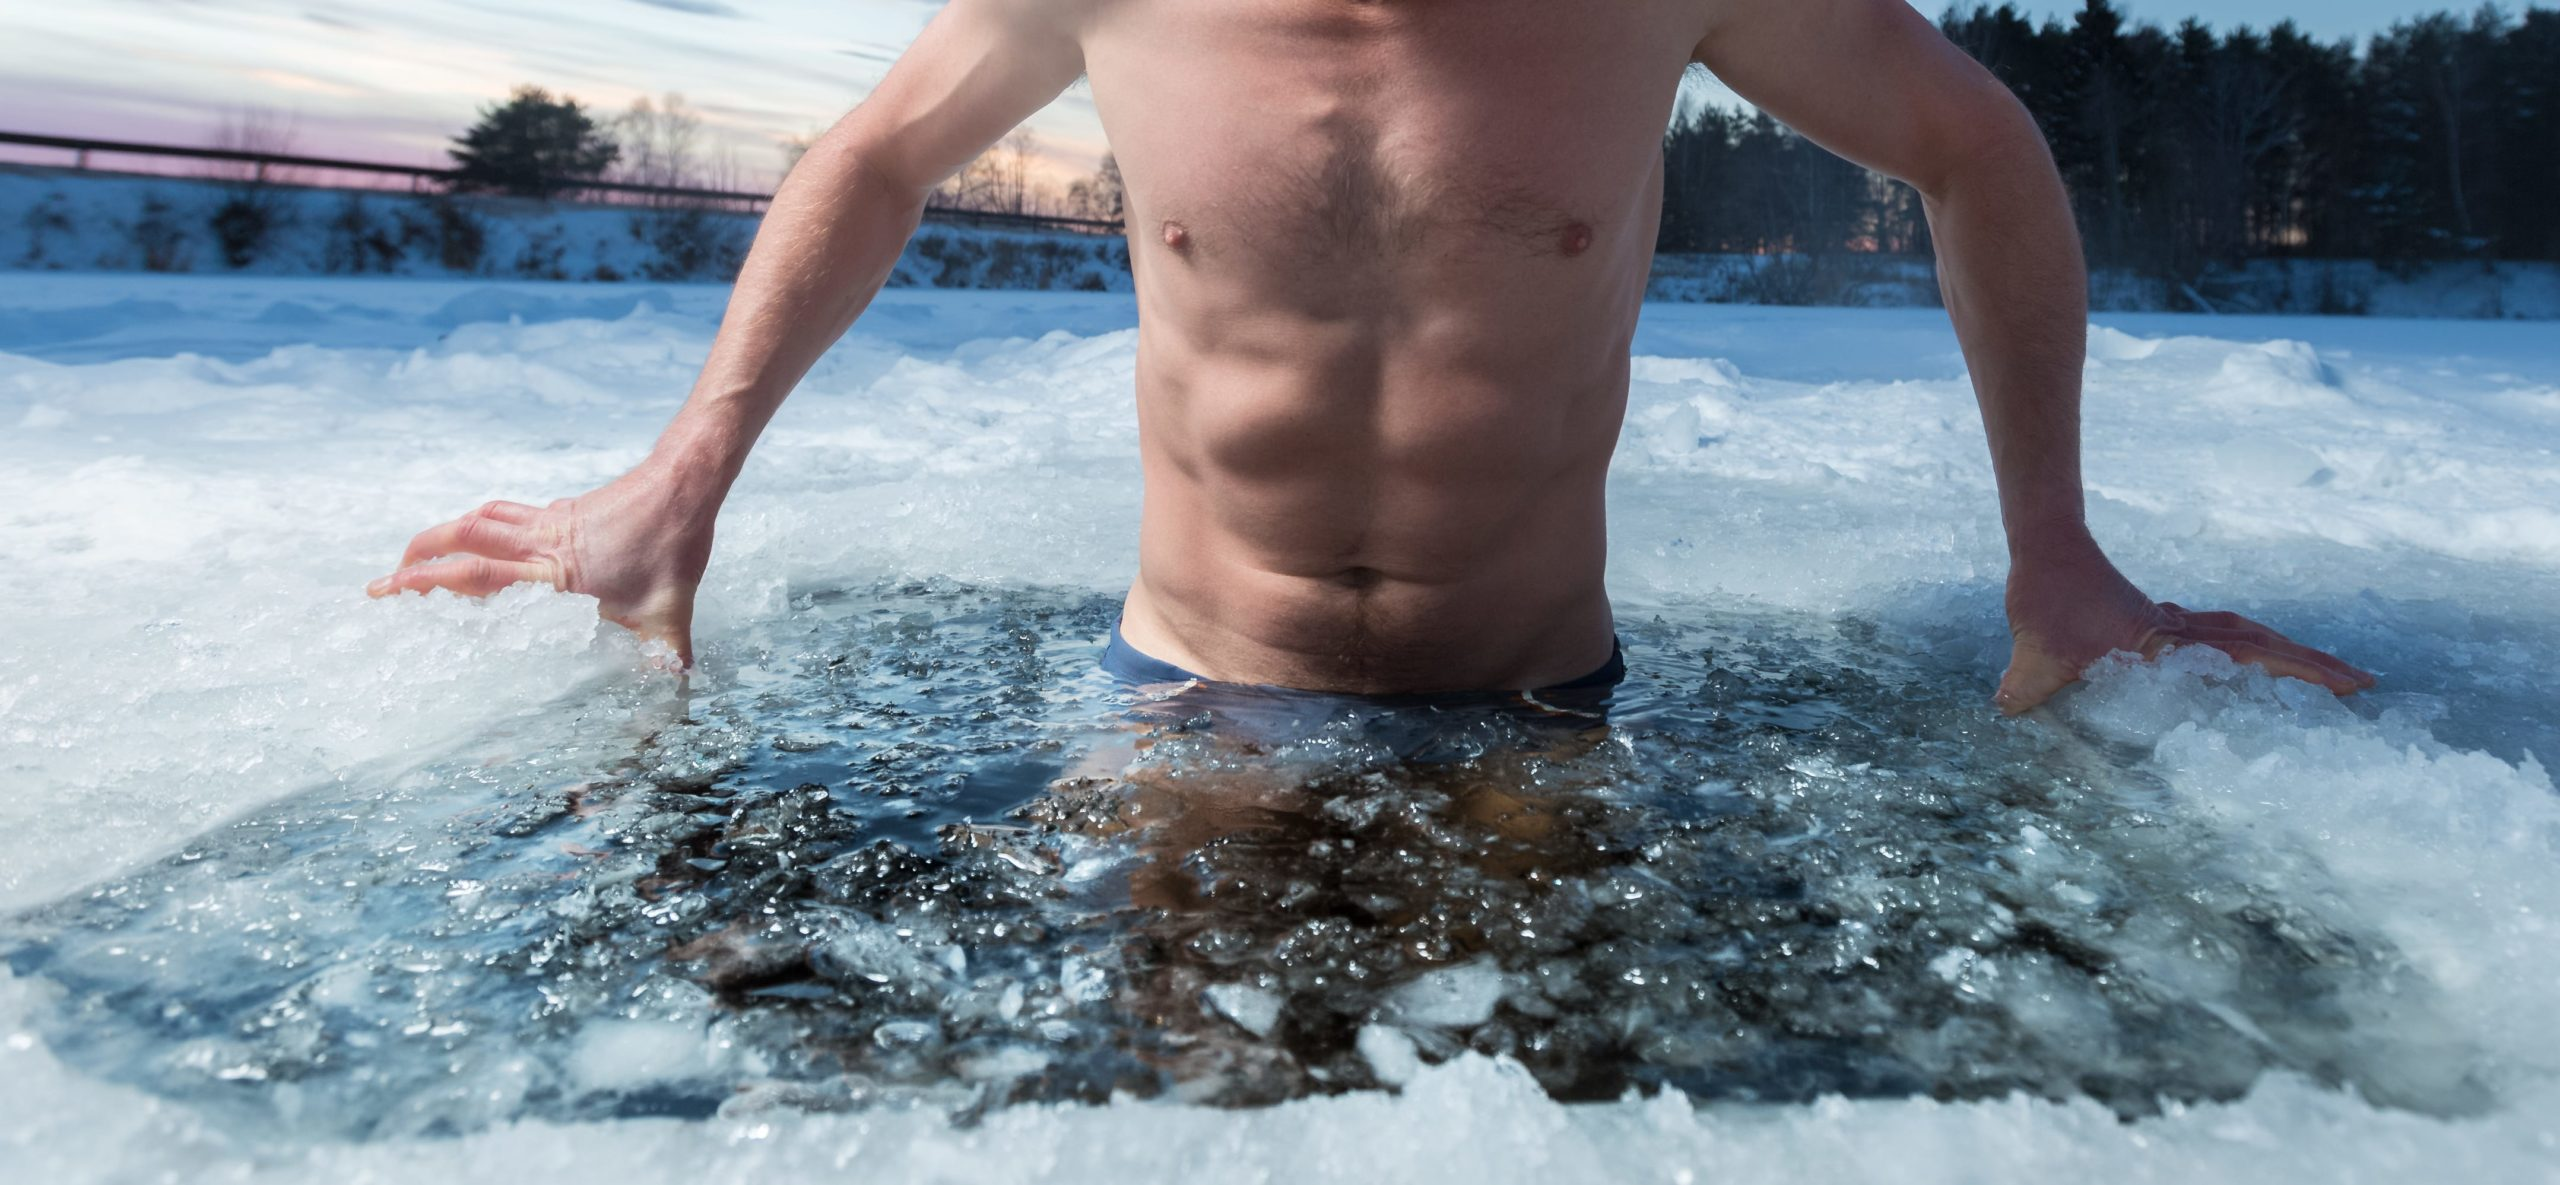 Photo of a man in freezing ice cold water.